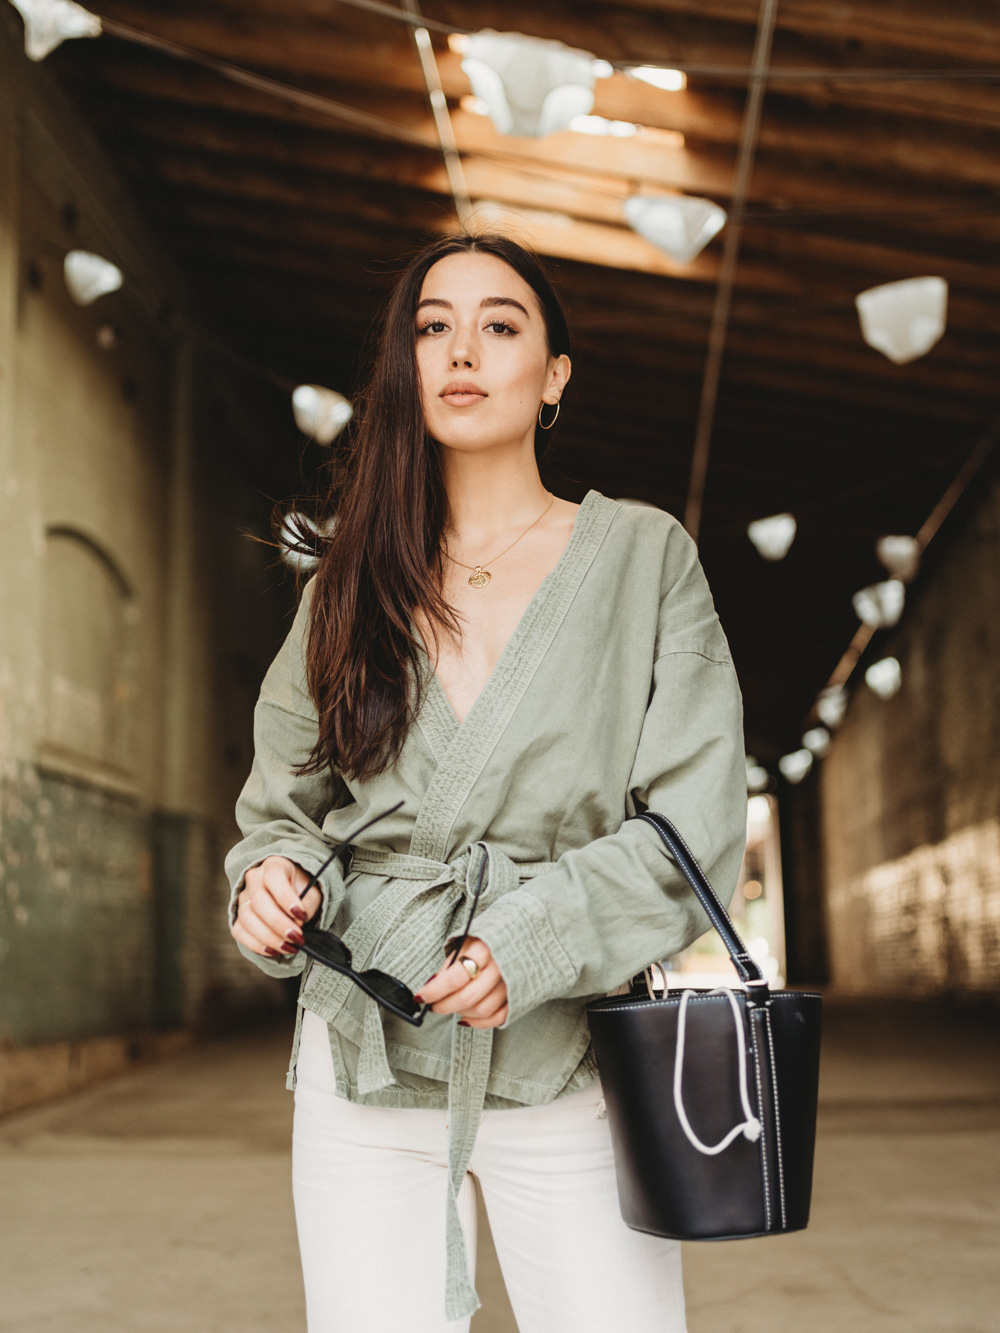 LOVE OR MONEY by Emily Tong wearing zara kimono jacket white flare jeans and snakeskin boots